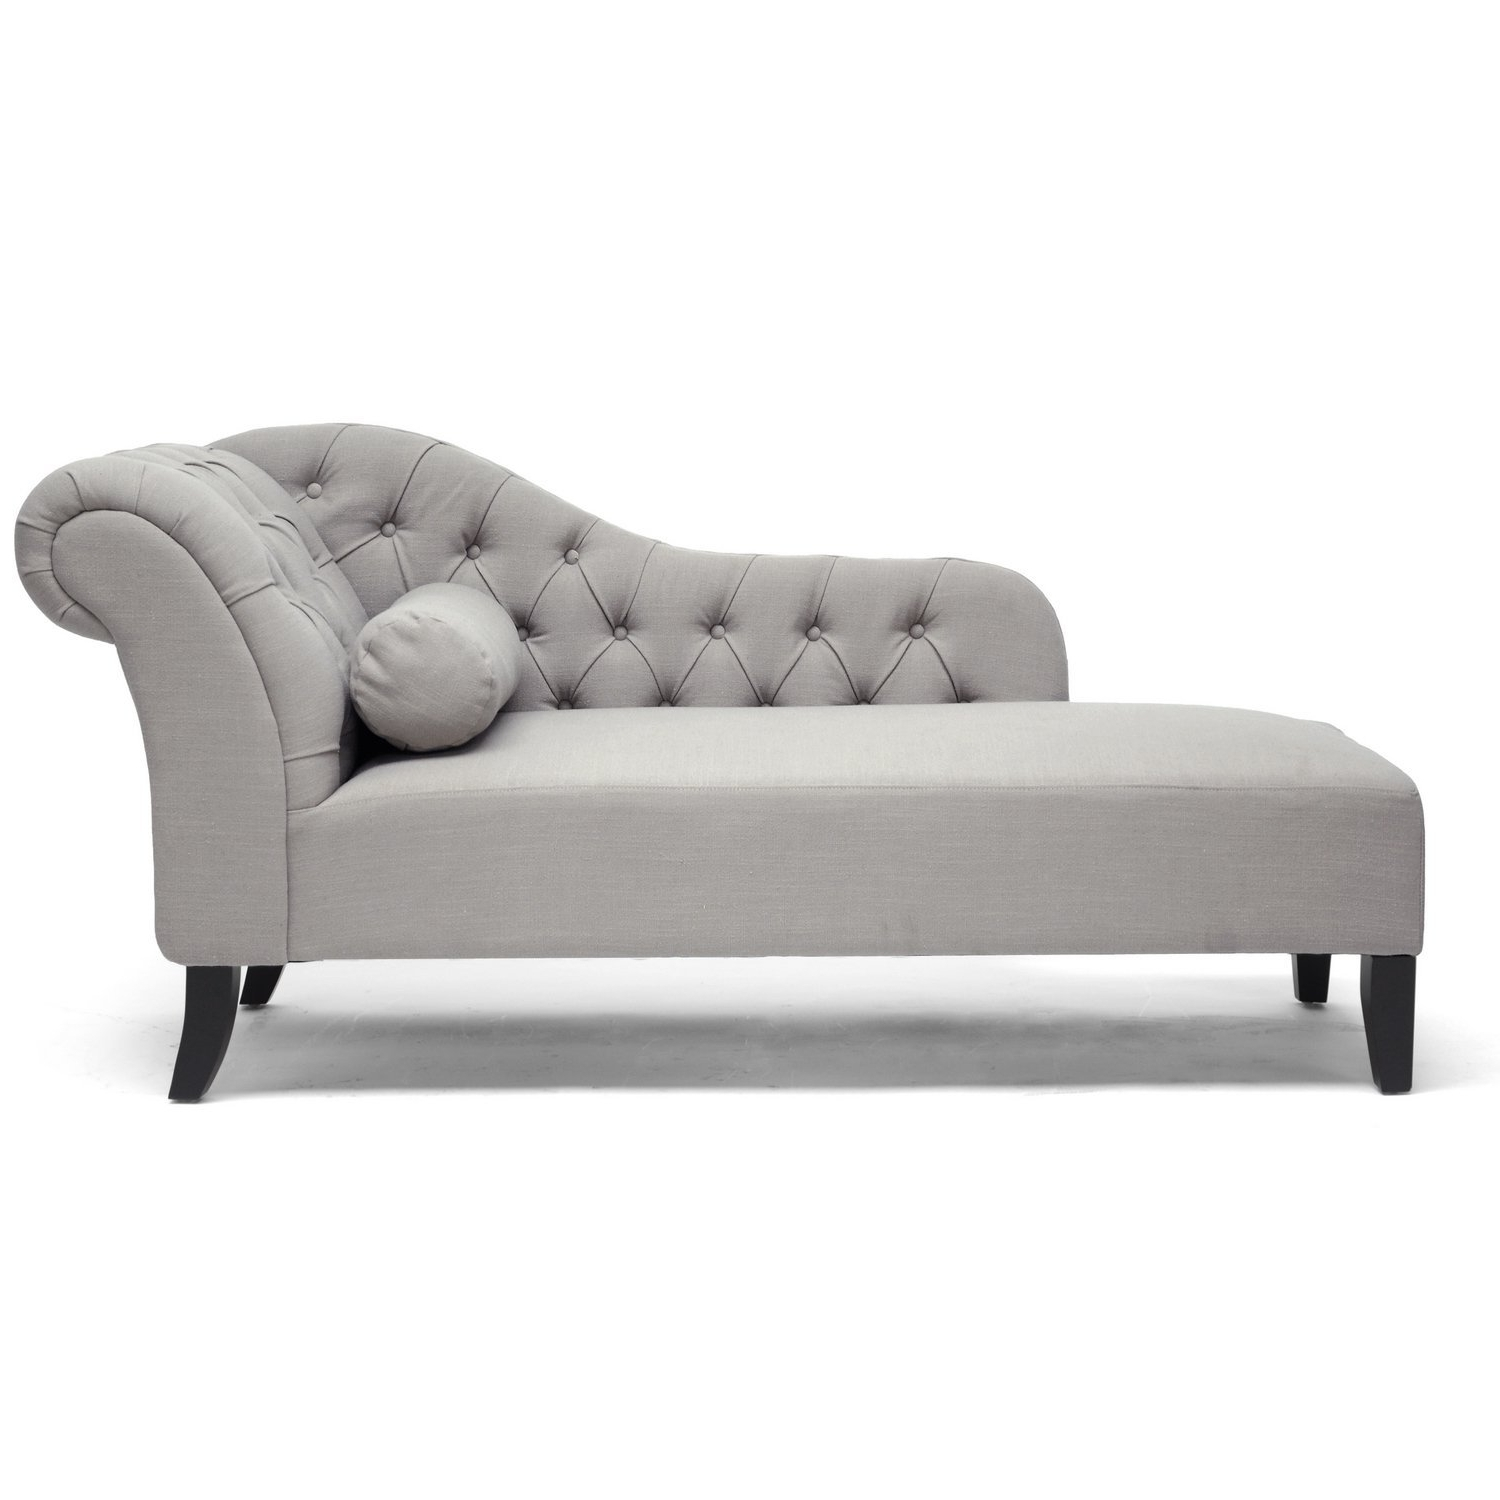 Kids Chaise Lounges Intended For Most Current Amazon: Baxton Studio Aphrodite Tufted Putty Linen Modern (View 8 of 15)